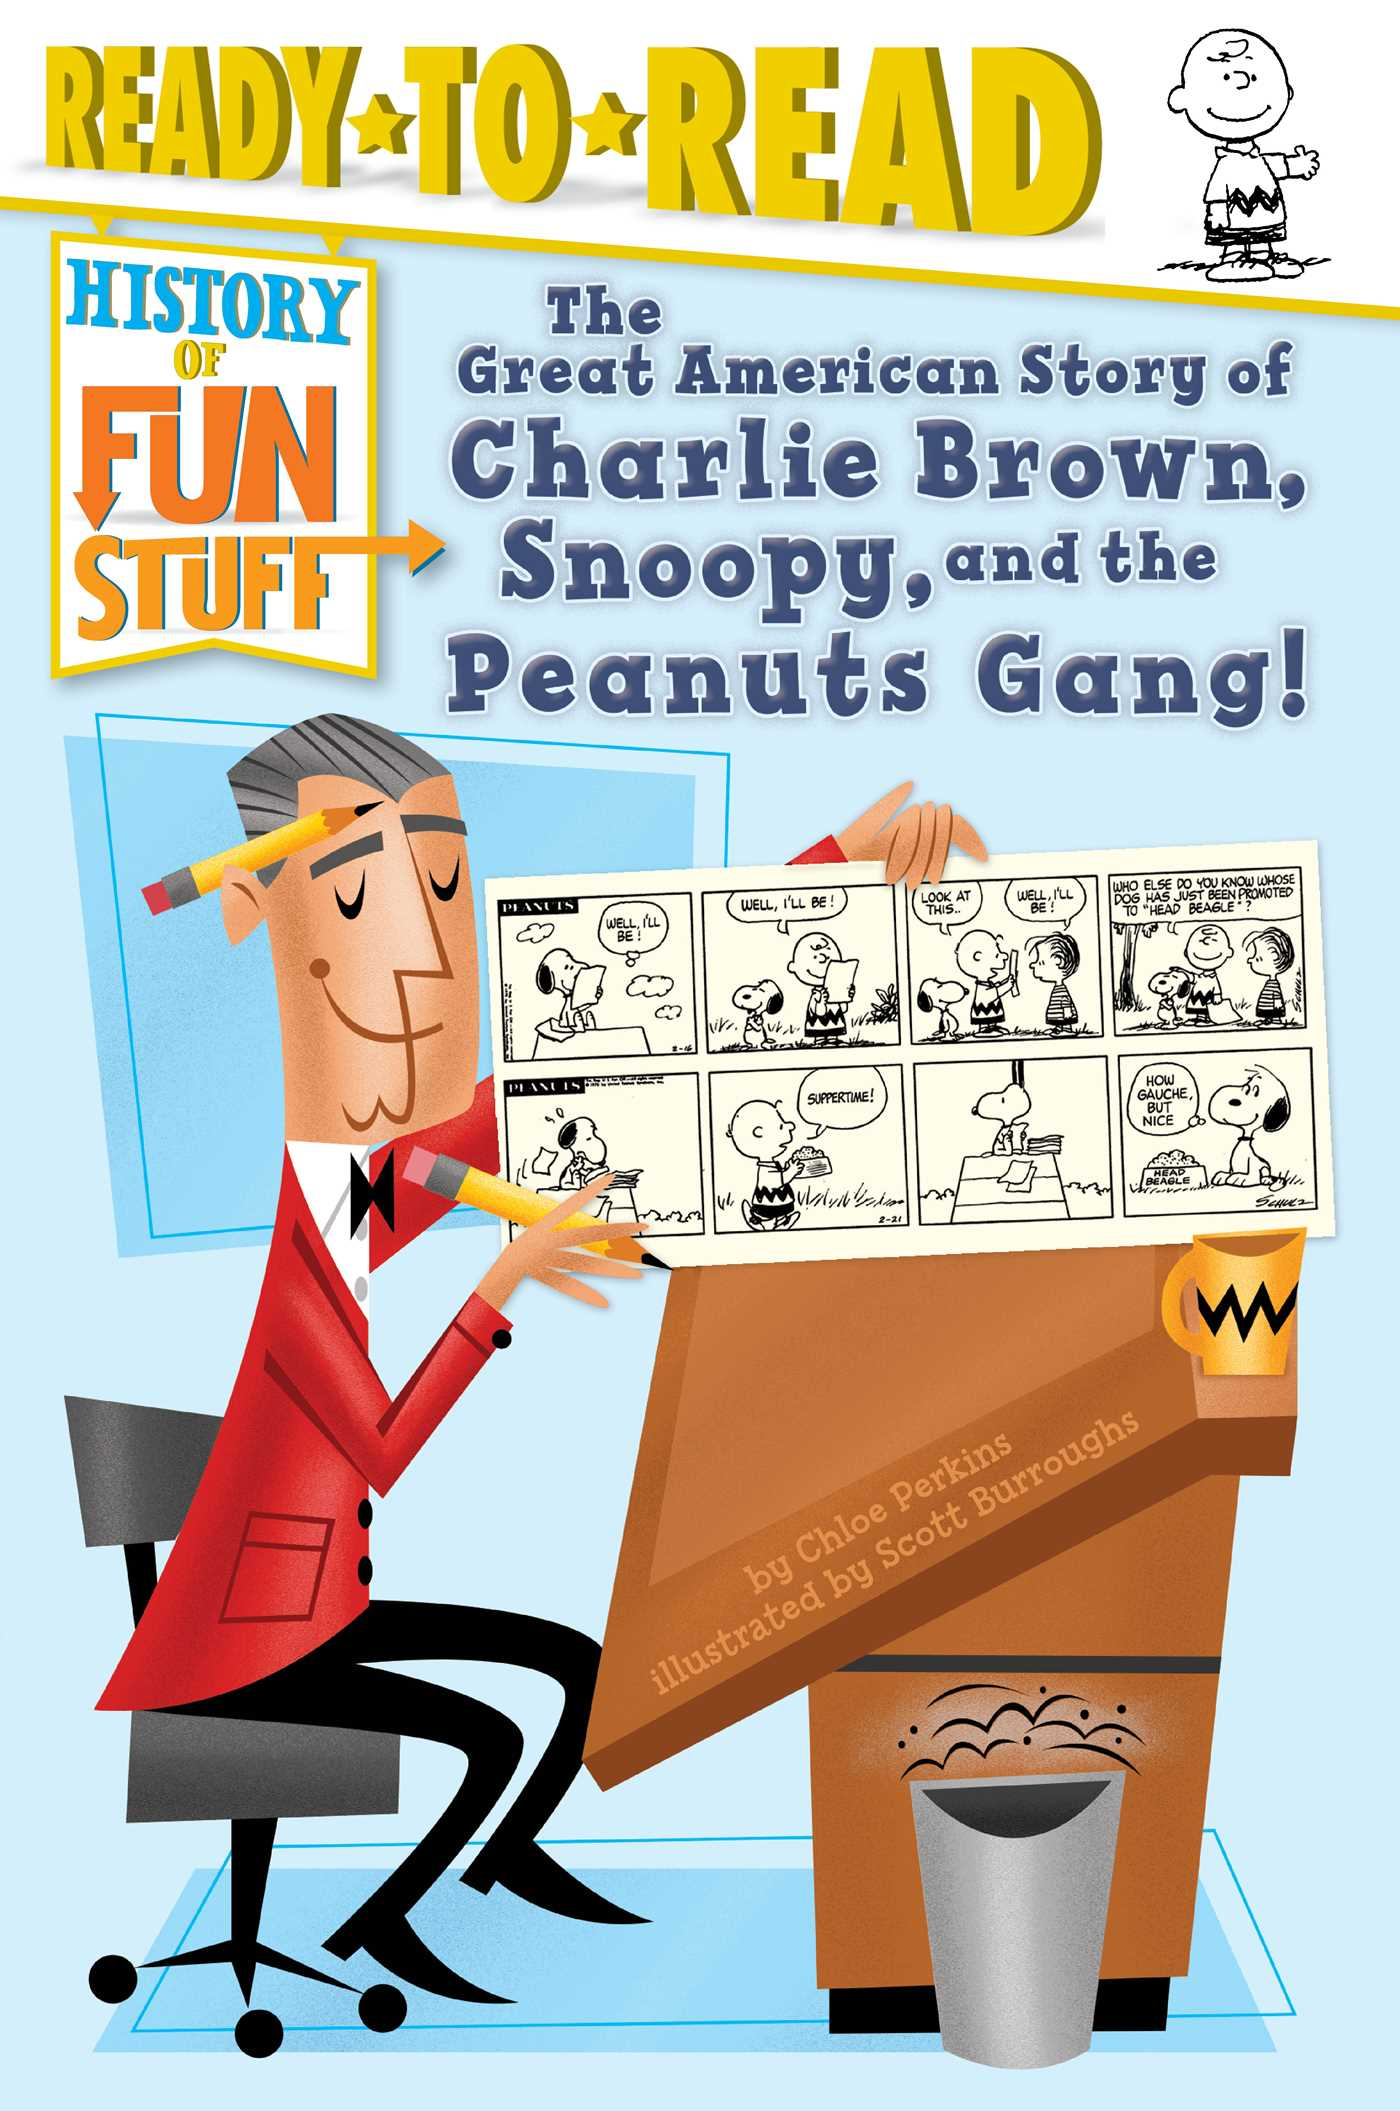 The great american story of charlie brown snoopy and the peanuts gang 9781481495530 hr